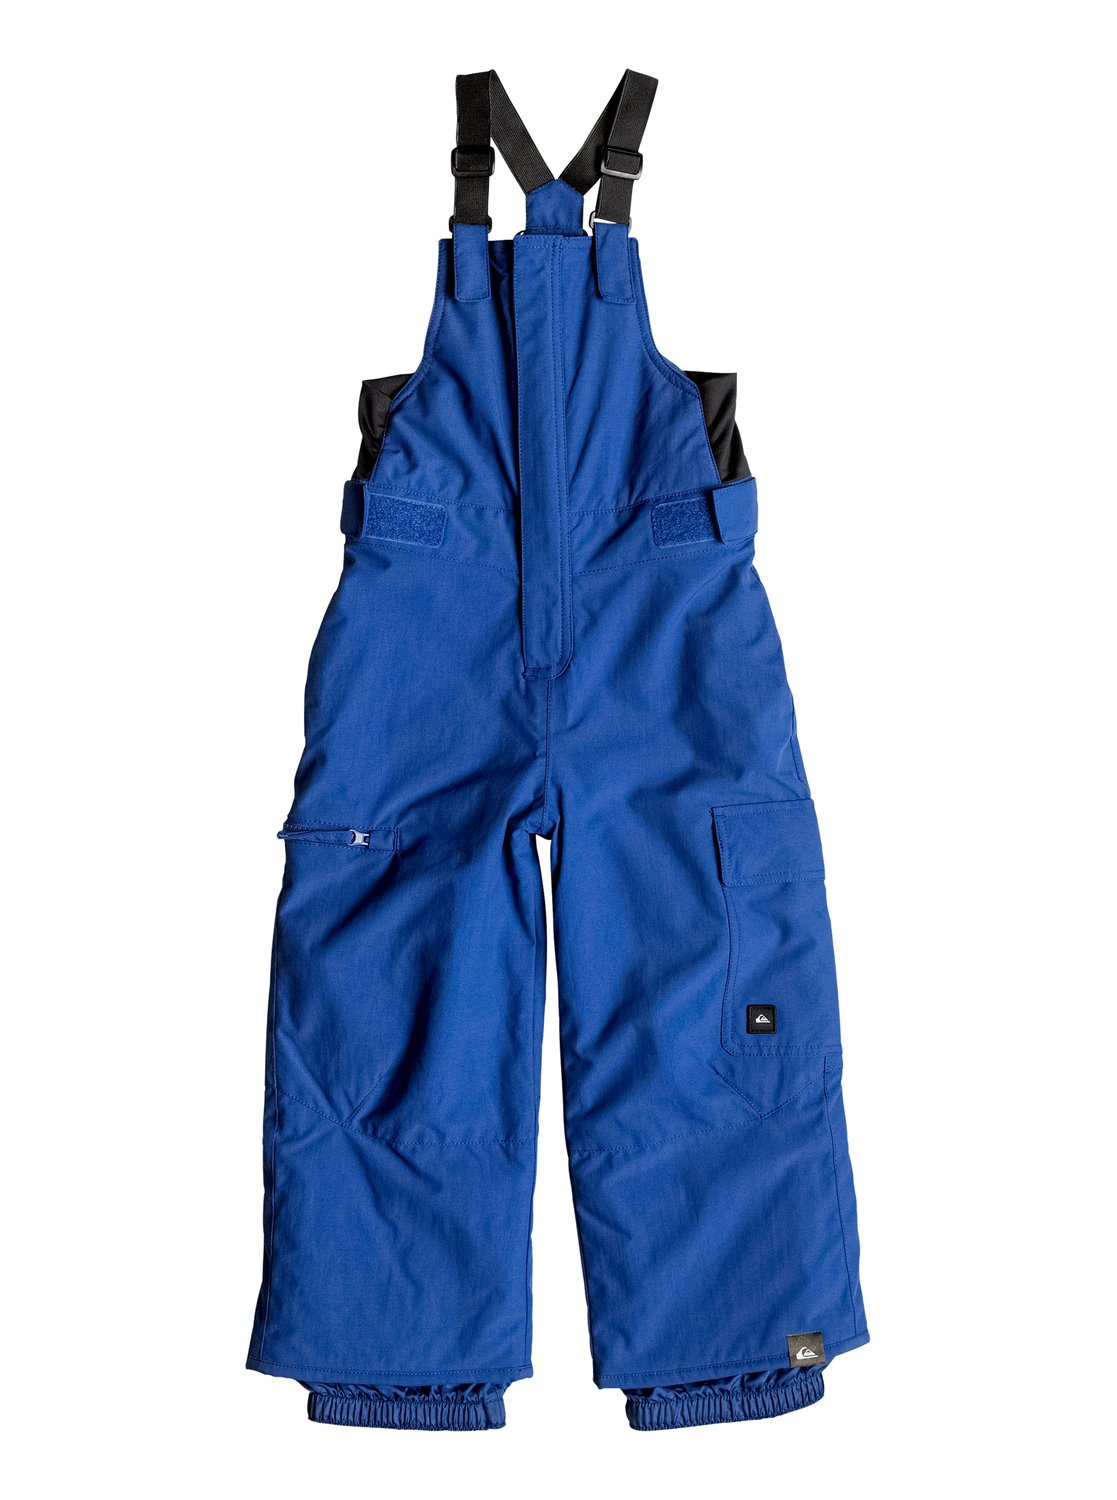 Сноубордические штаны-комбинезон BoogieThe Boogie snow bib pants for boys offer the all-over protection of a jumpsuit but with the freedom of a pair of snow pants, perfect for the new generation of micro shredders. Woven from durable nylon, the shell comes with a high level of waterproofing thanks to the Quiksilver DryFlight® 10K technology. 100g of WarmFlight® keeps it toasty when temperatures drop while the taffeta and brushed tricot lining is warm and soft on the skin. Available with an adjustable grow system, so they might outgrow on the hill, but they wont outgrow this bib pant.<br>